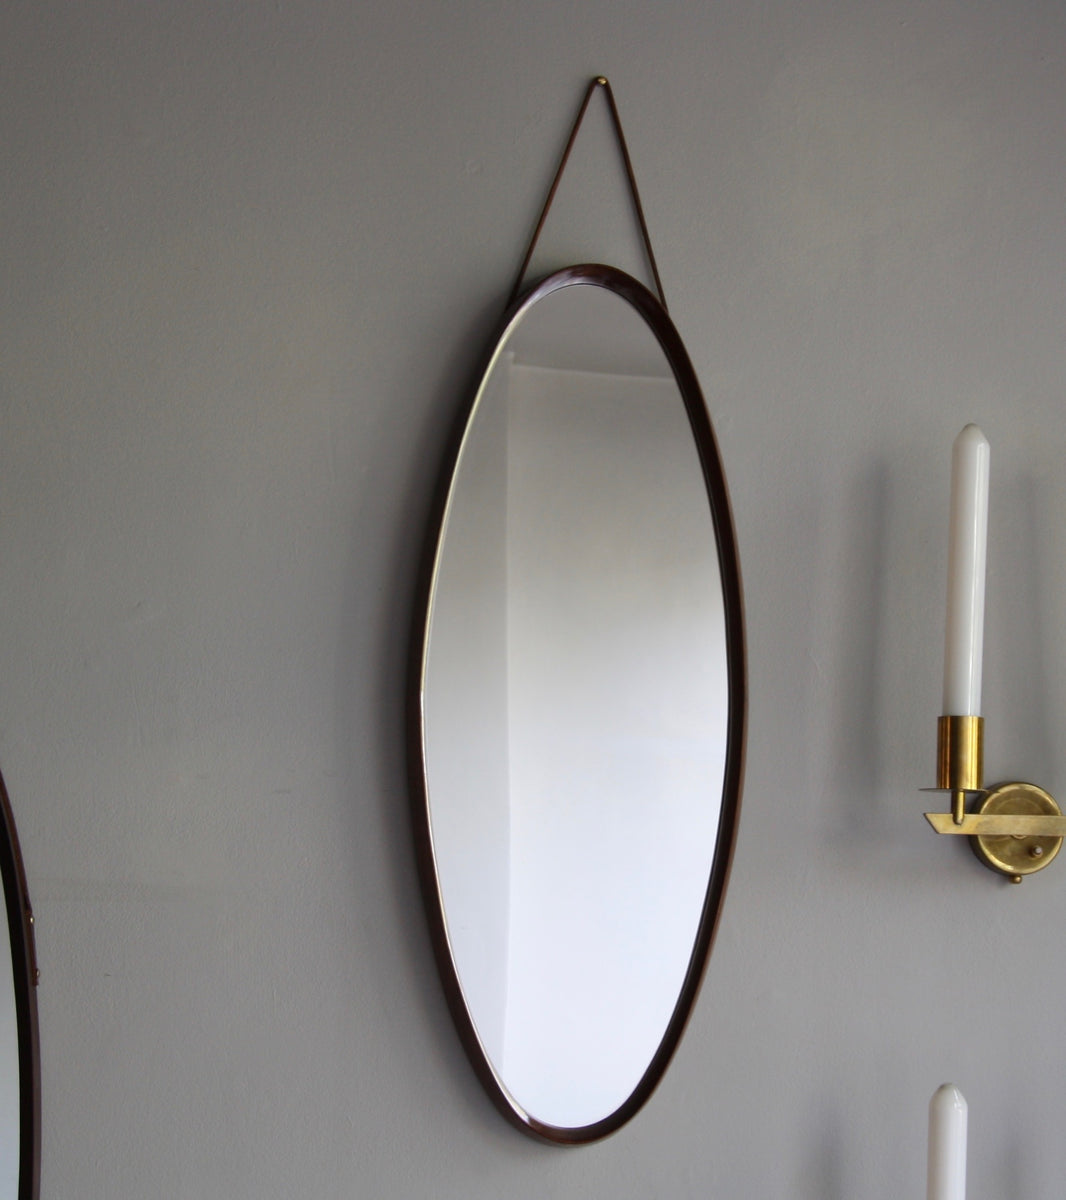 Teak Oval Mirror with Leather Denmark C. 1950 - Image 1